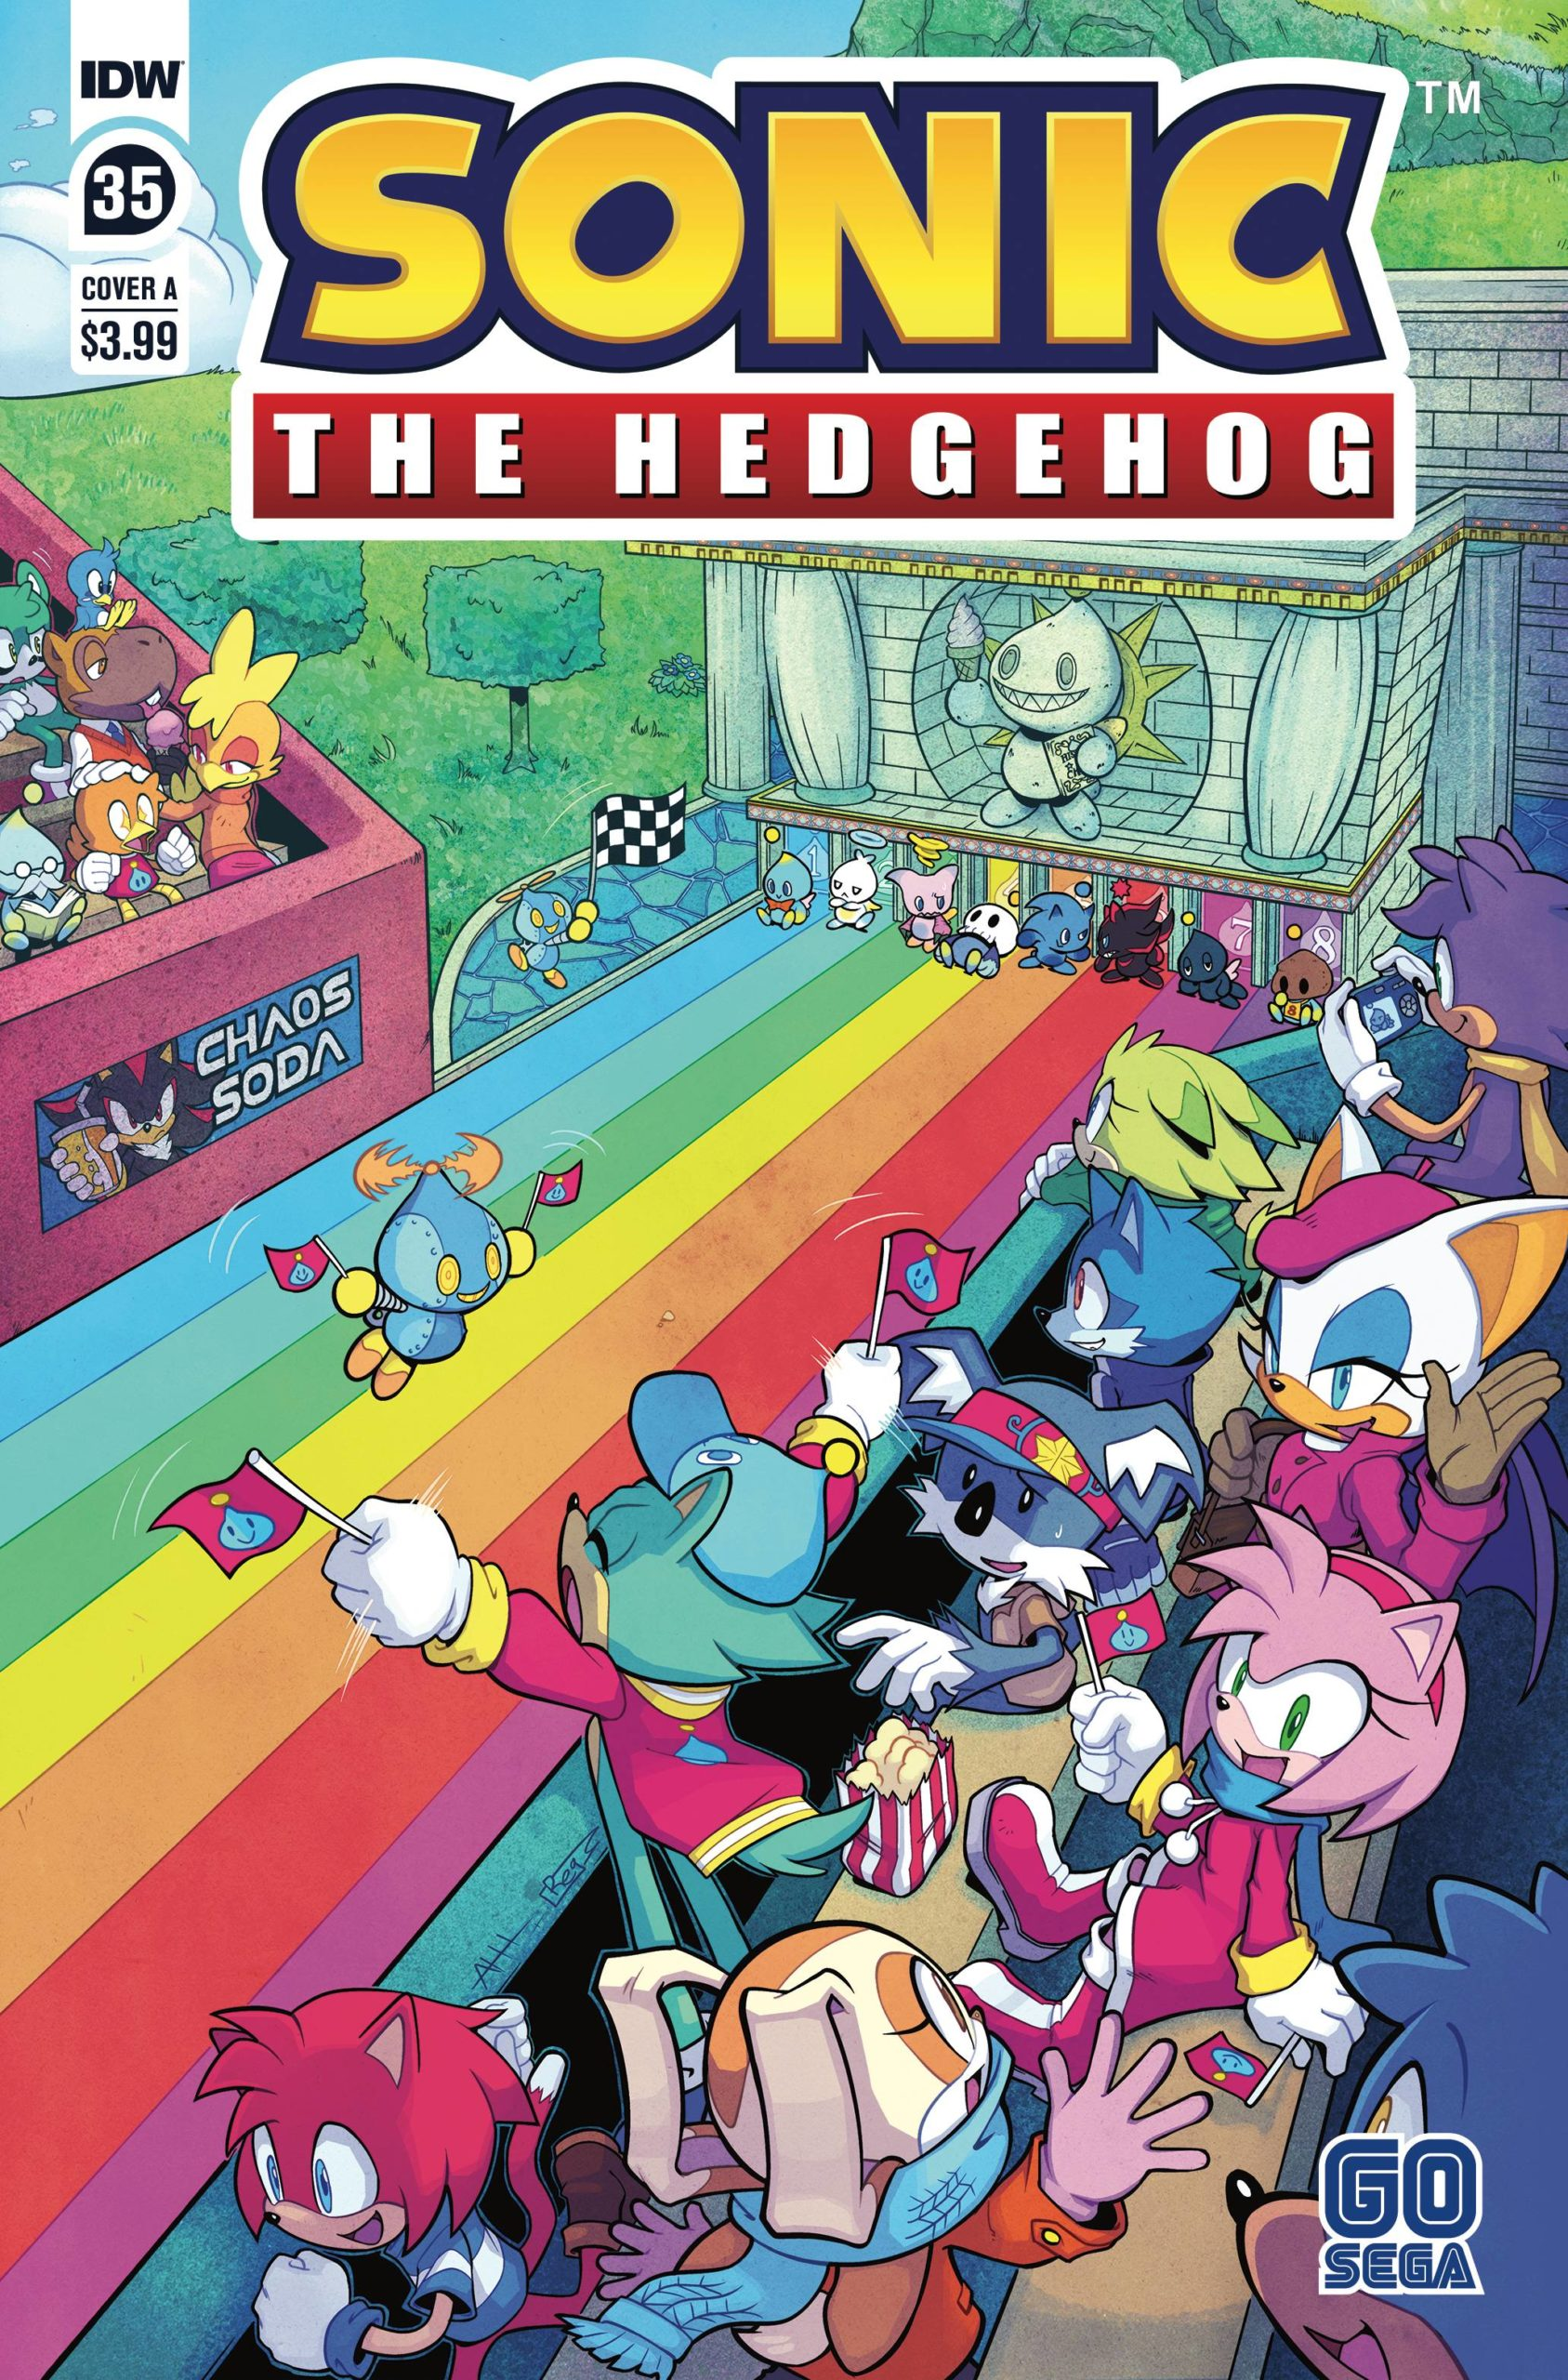 Covers And Solicitations Reveals For Idw S Sonic The Hedgehog 35 And Bad Guys 3 The Sonic Stadium